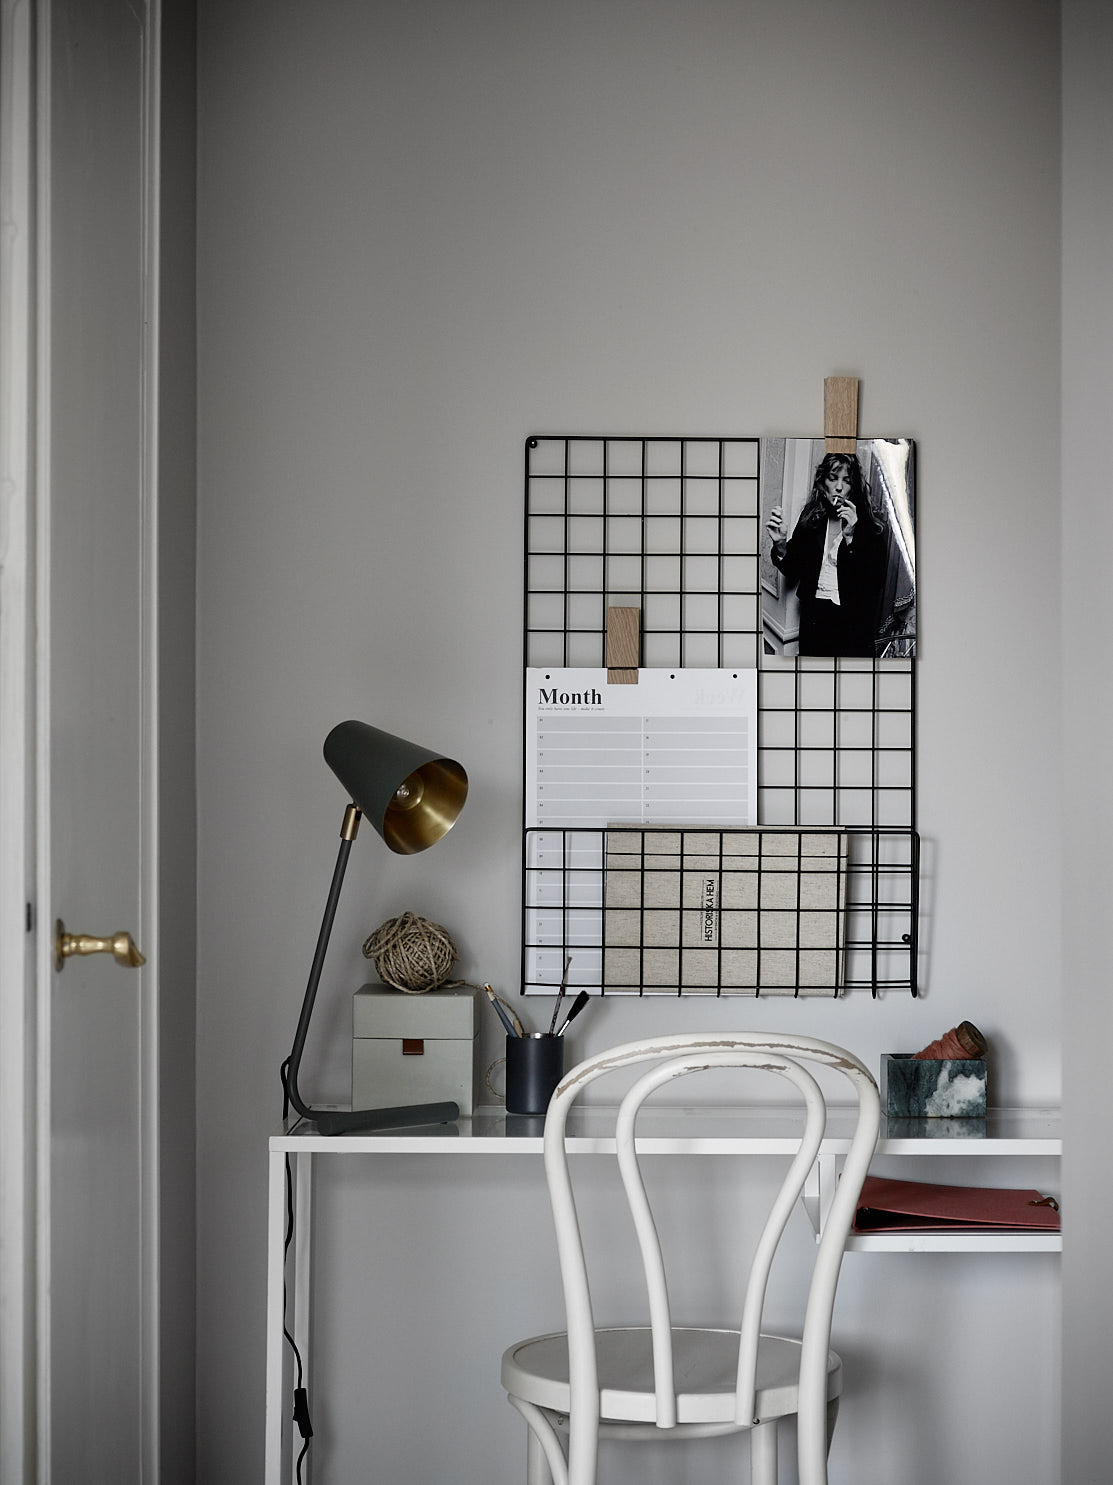 Small Home With A Smart Layout Coco Lapine Designcoco Lapine Design